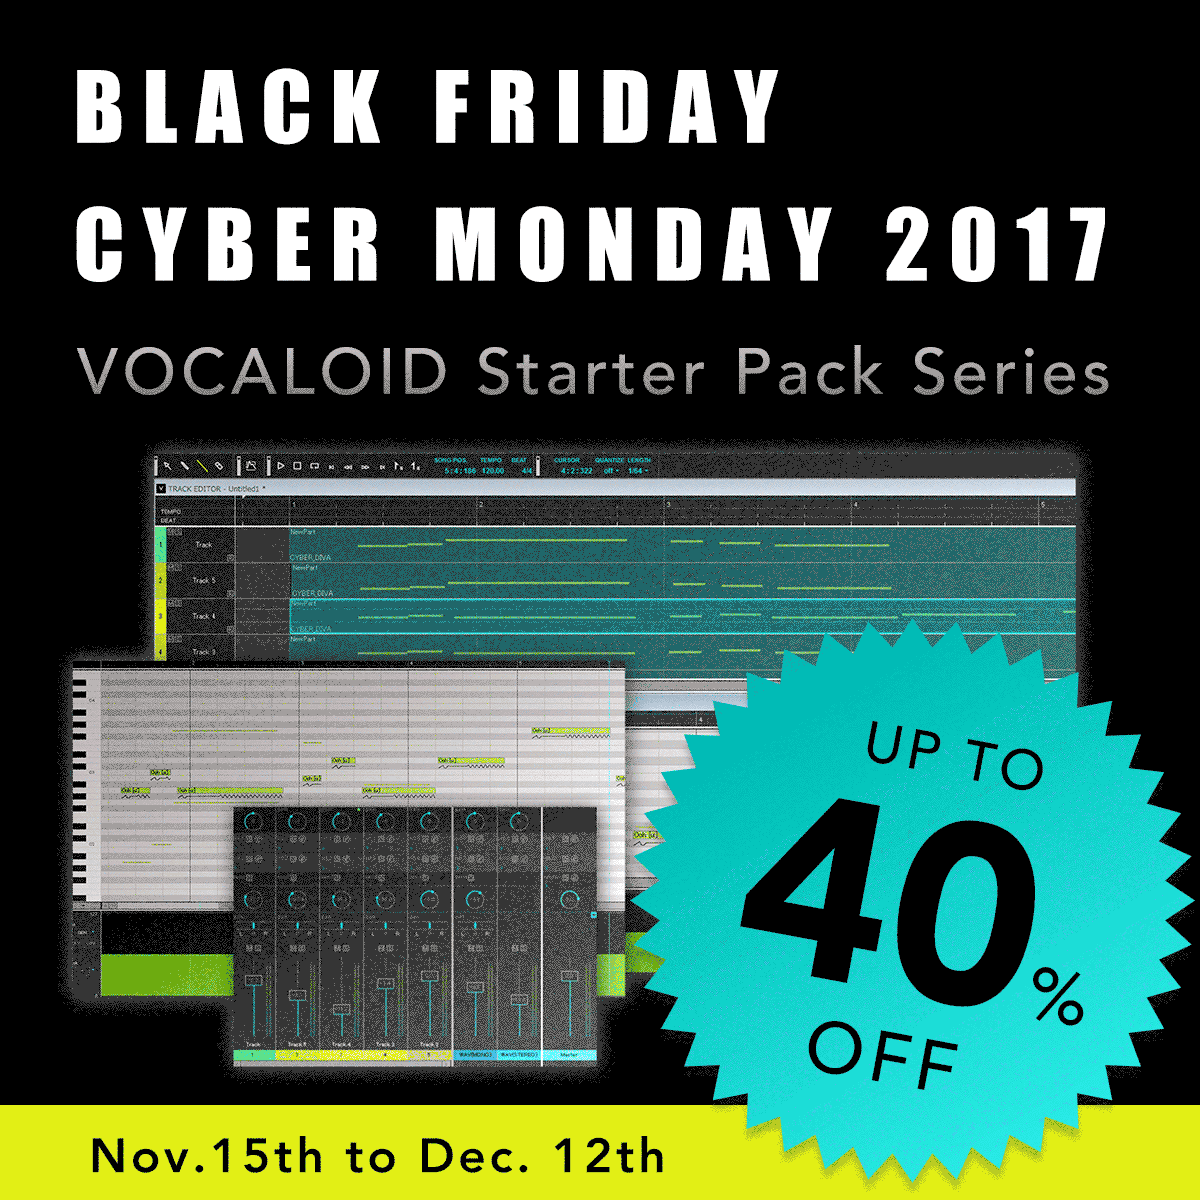 KVR: #KVRDeal Yamaha Vocaloid Shop Black Friday and Cyber